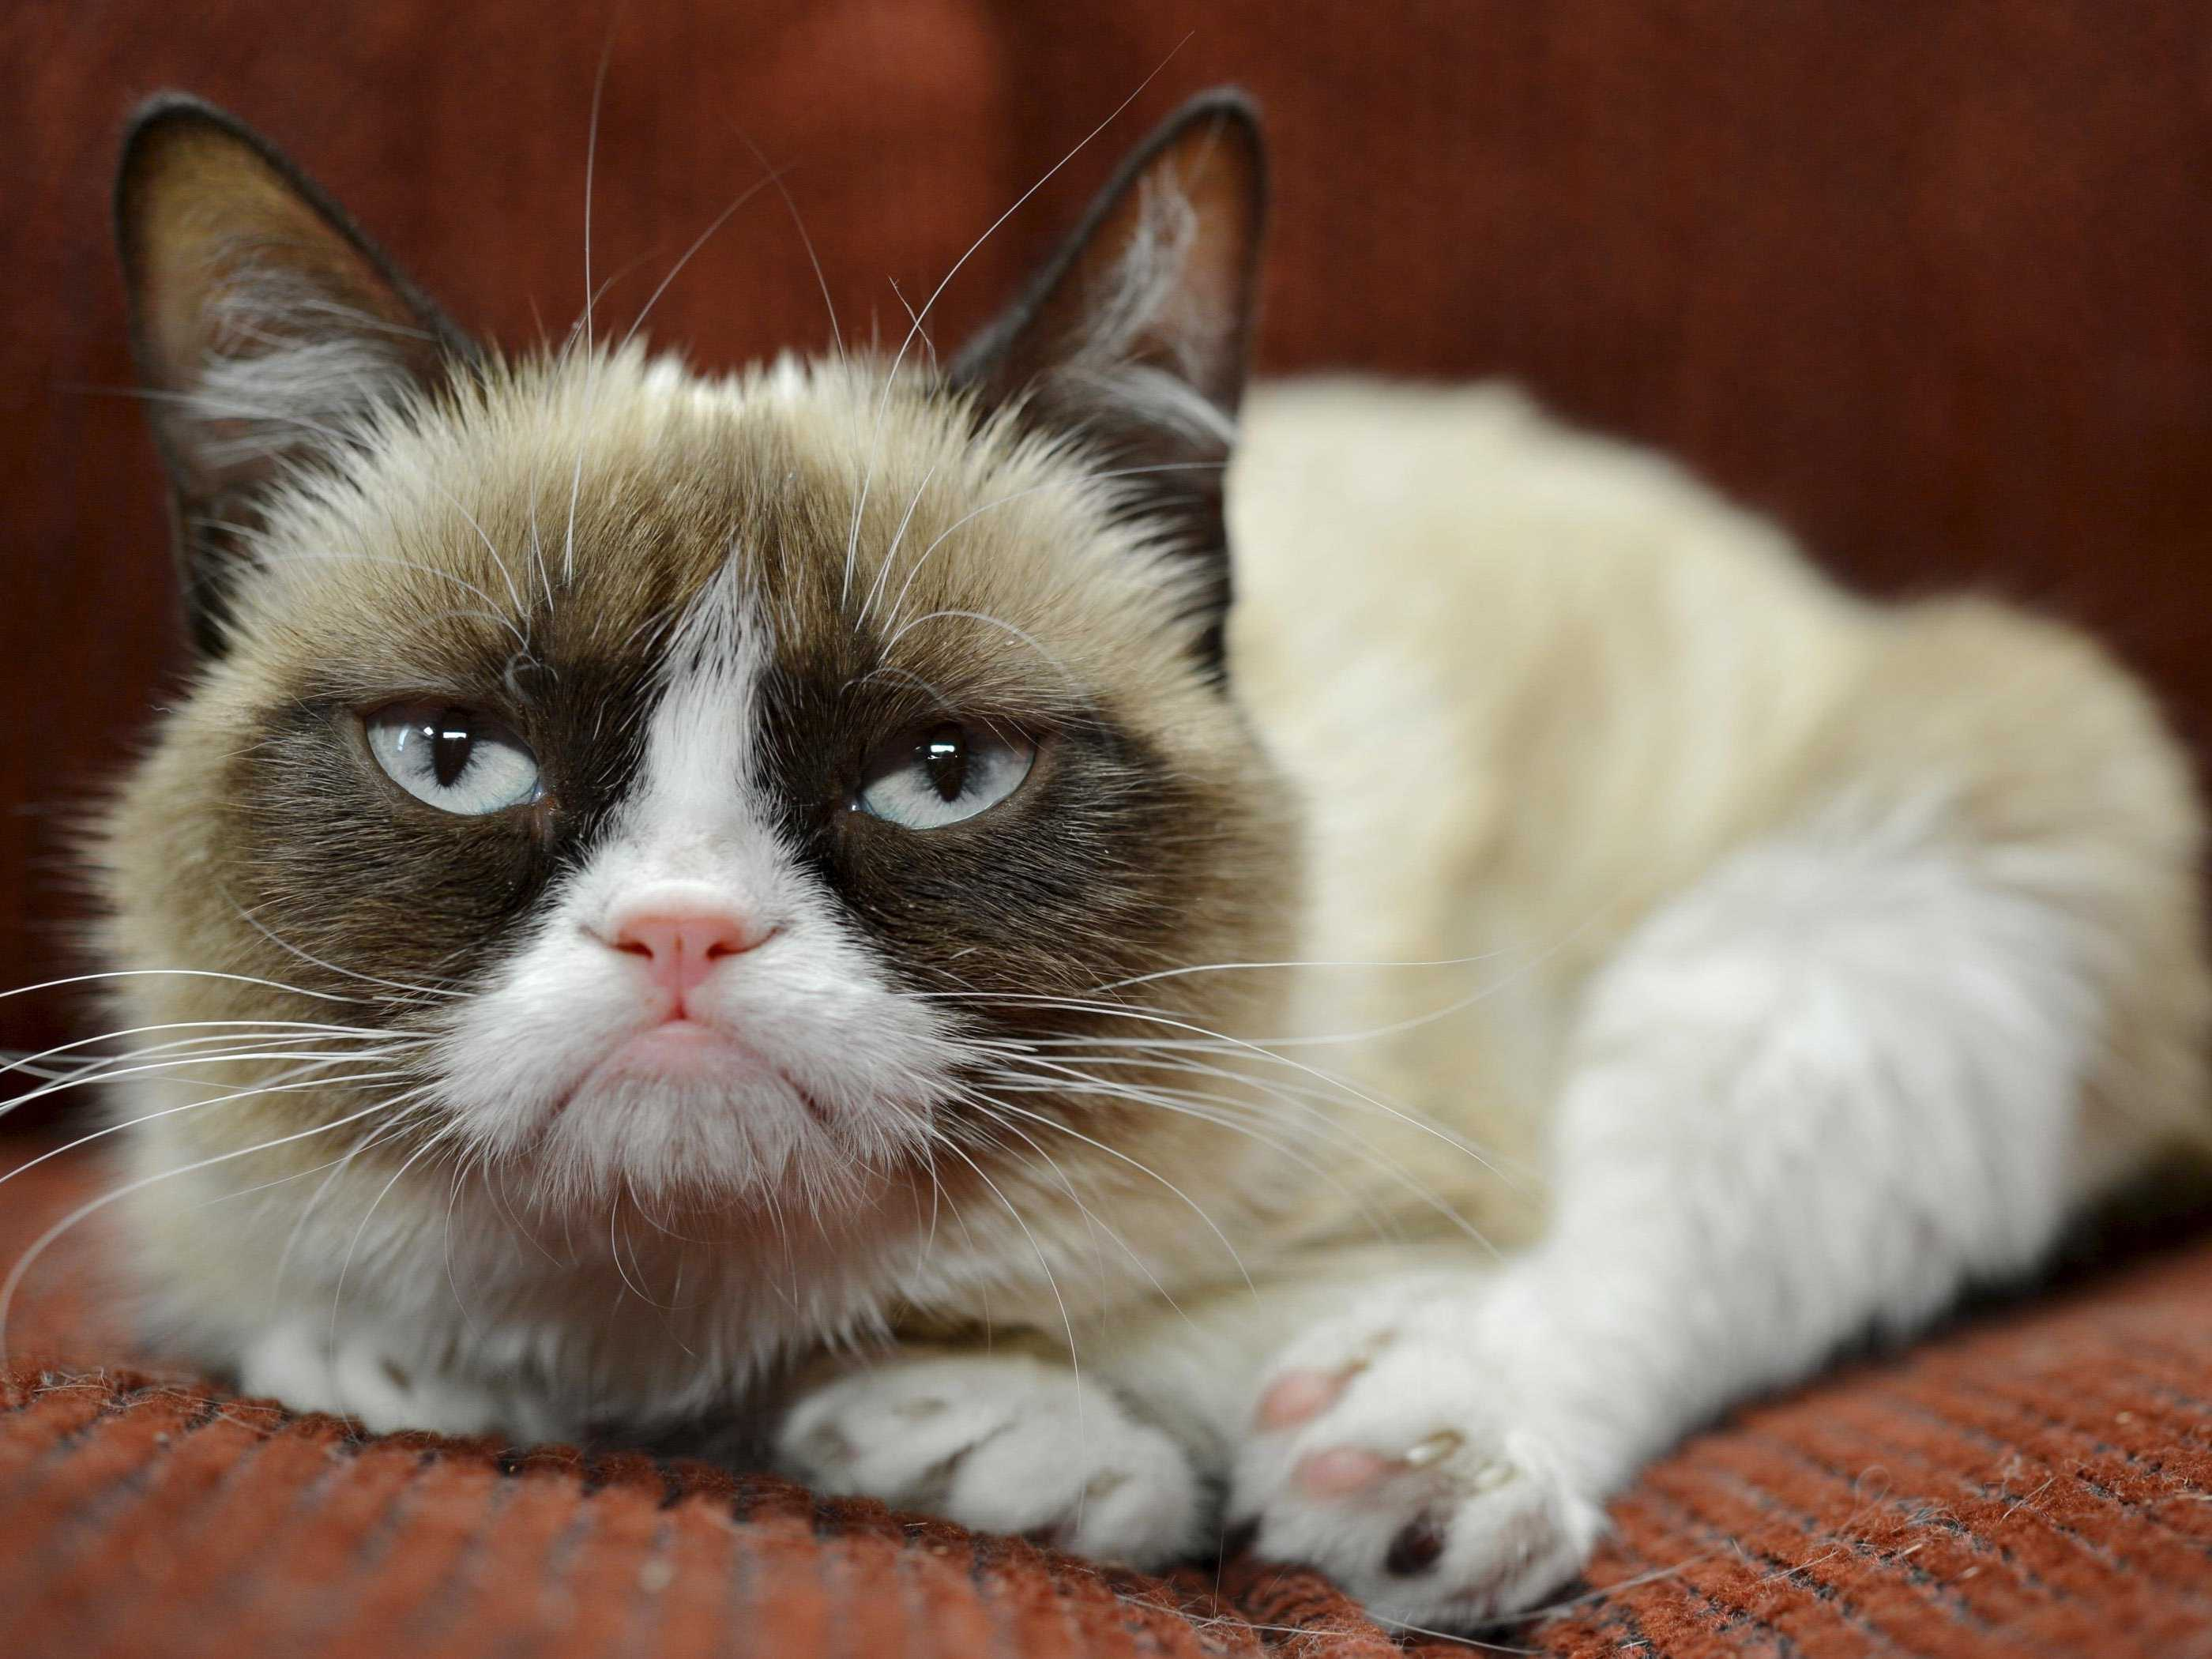 internet-famous-grumpy-cat-just-landed-an-endorsement-deal-with-friskies.jpg